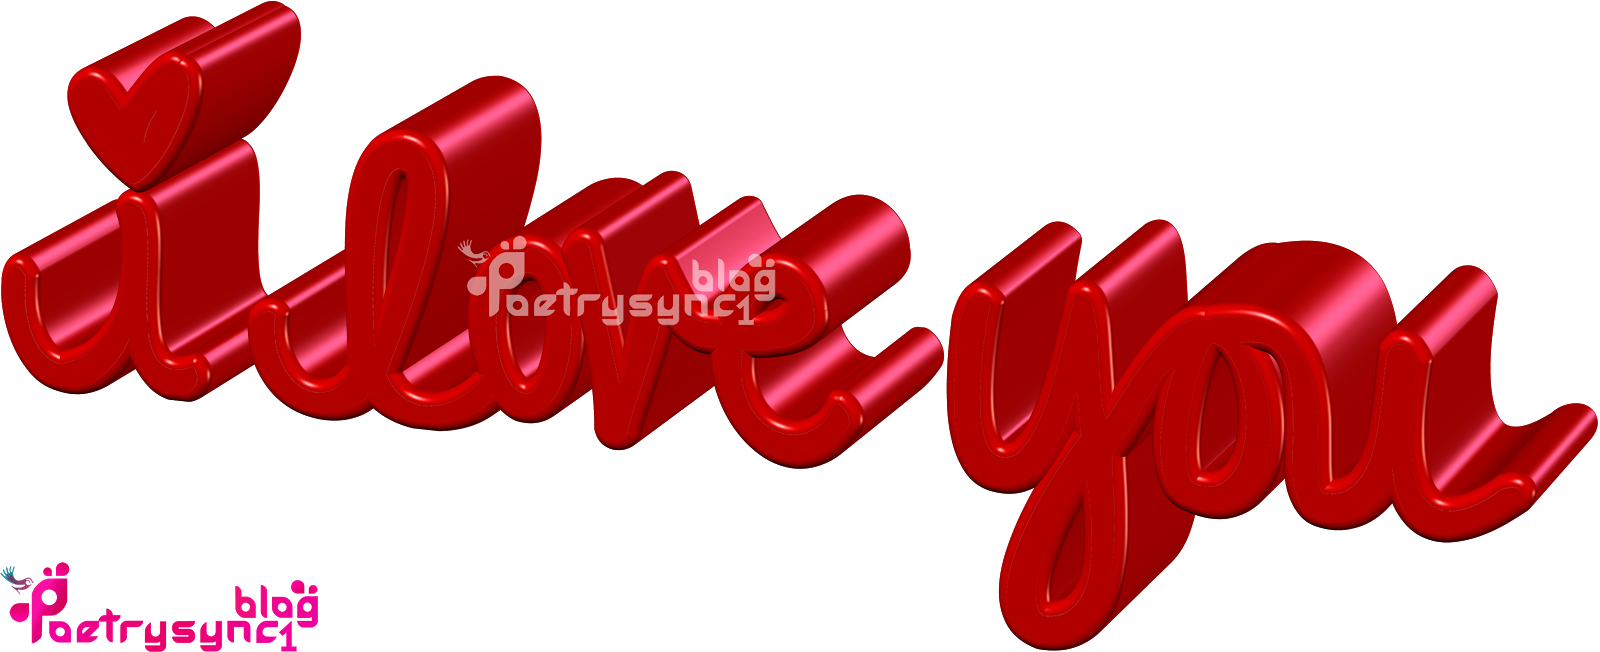 Love-3D-I-Love-You-Image-Wallpaper-In-Red-Colour-By-Poetrysync1.blog